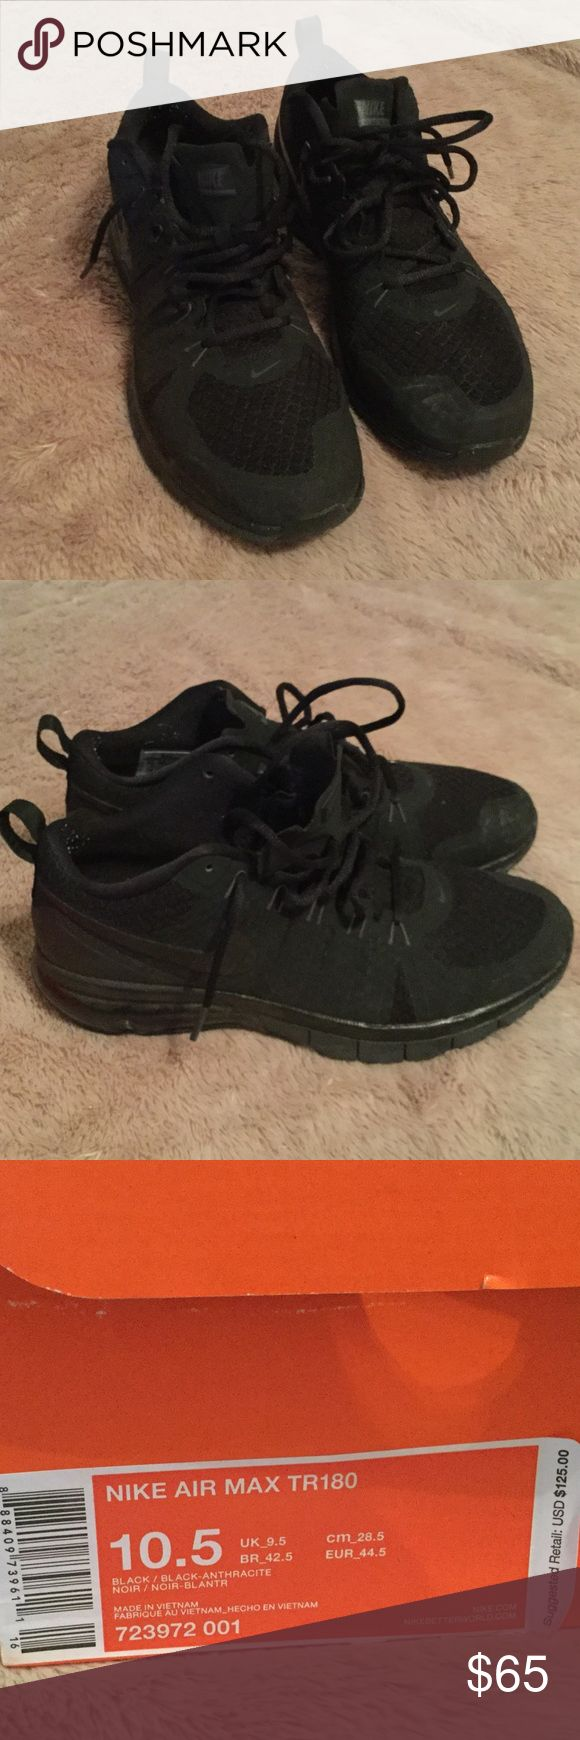 Nike Air Max TR180 10.5 Nike Air Max TR180 men's shoes. Worn twice on football turf. Nike Shoes Athletic Shoes